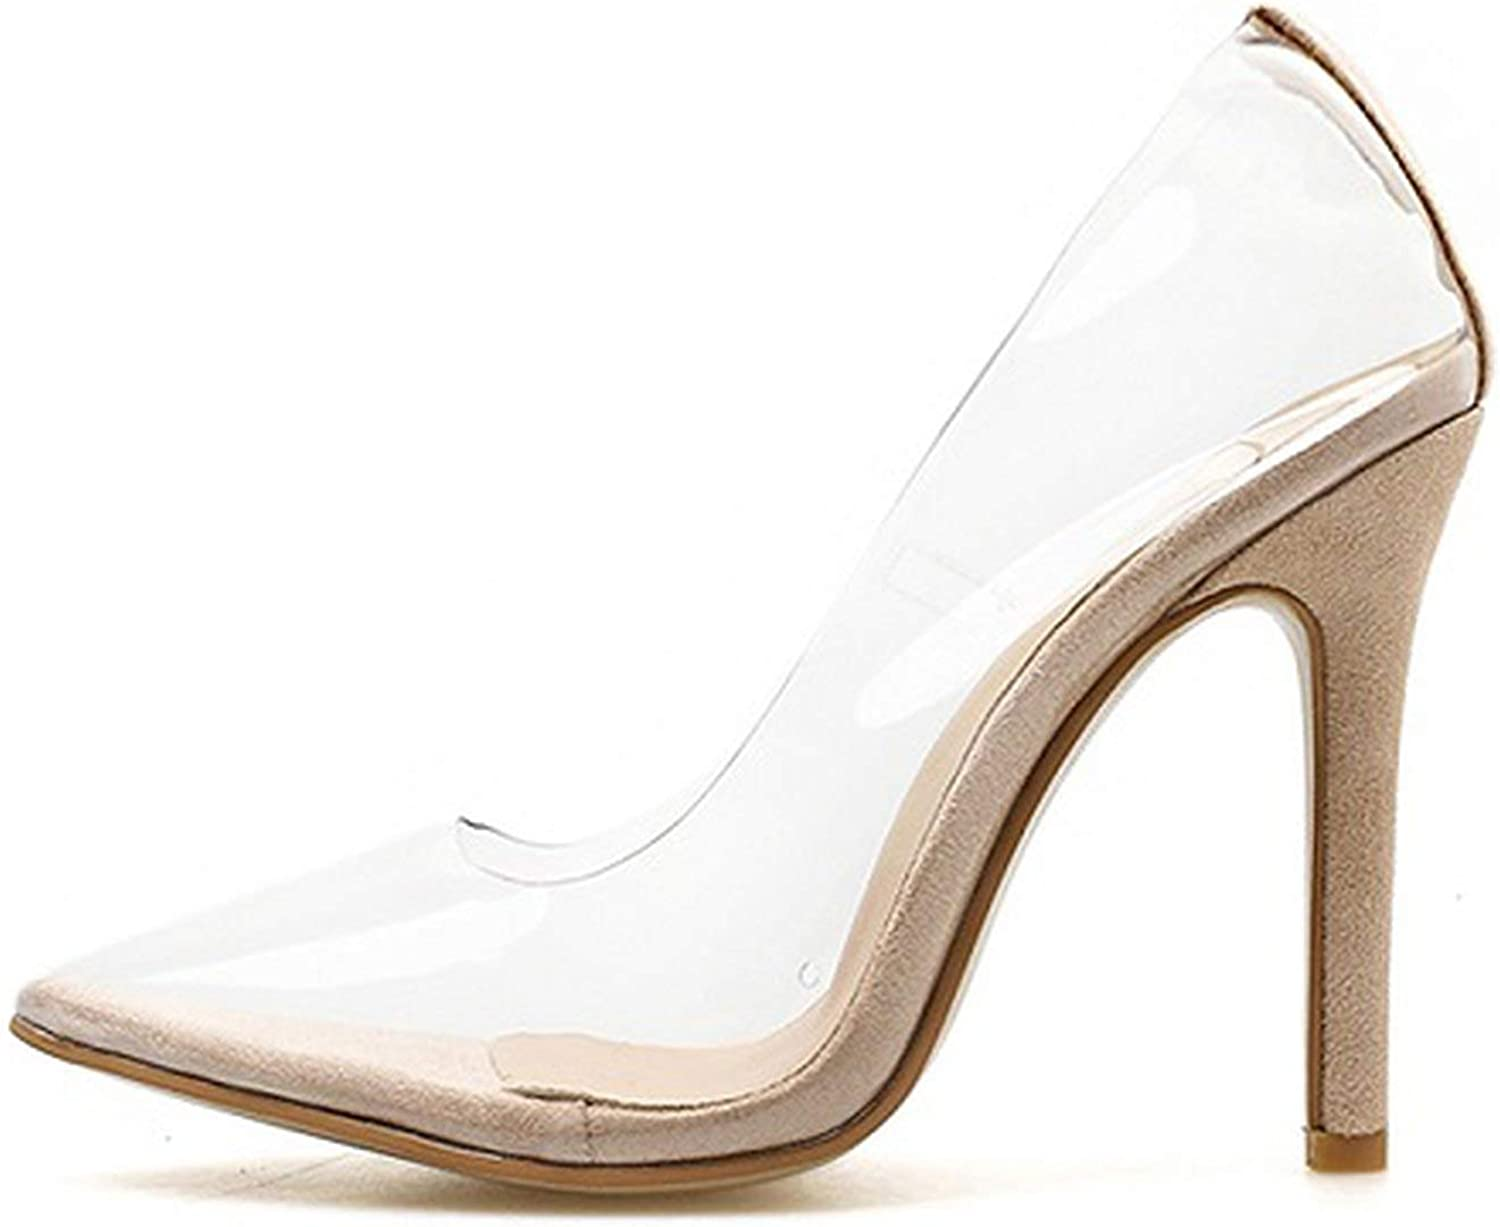 Clear PVC Transparent Pumps Sandals Perspex Heel Stilettos High Heels Point Toes Womens Party shoes Nightclub Pump 35-42,apricot1,4